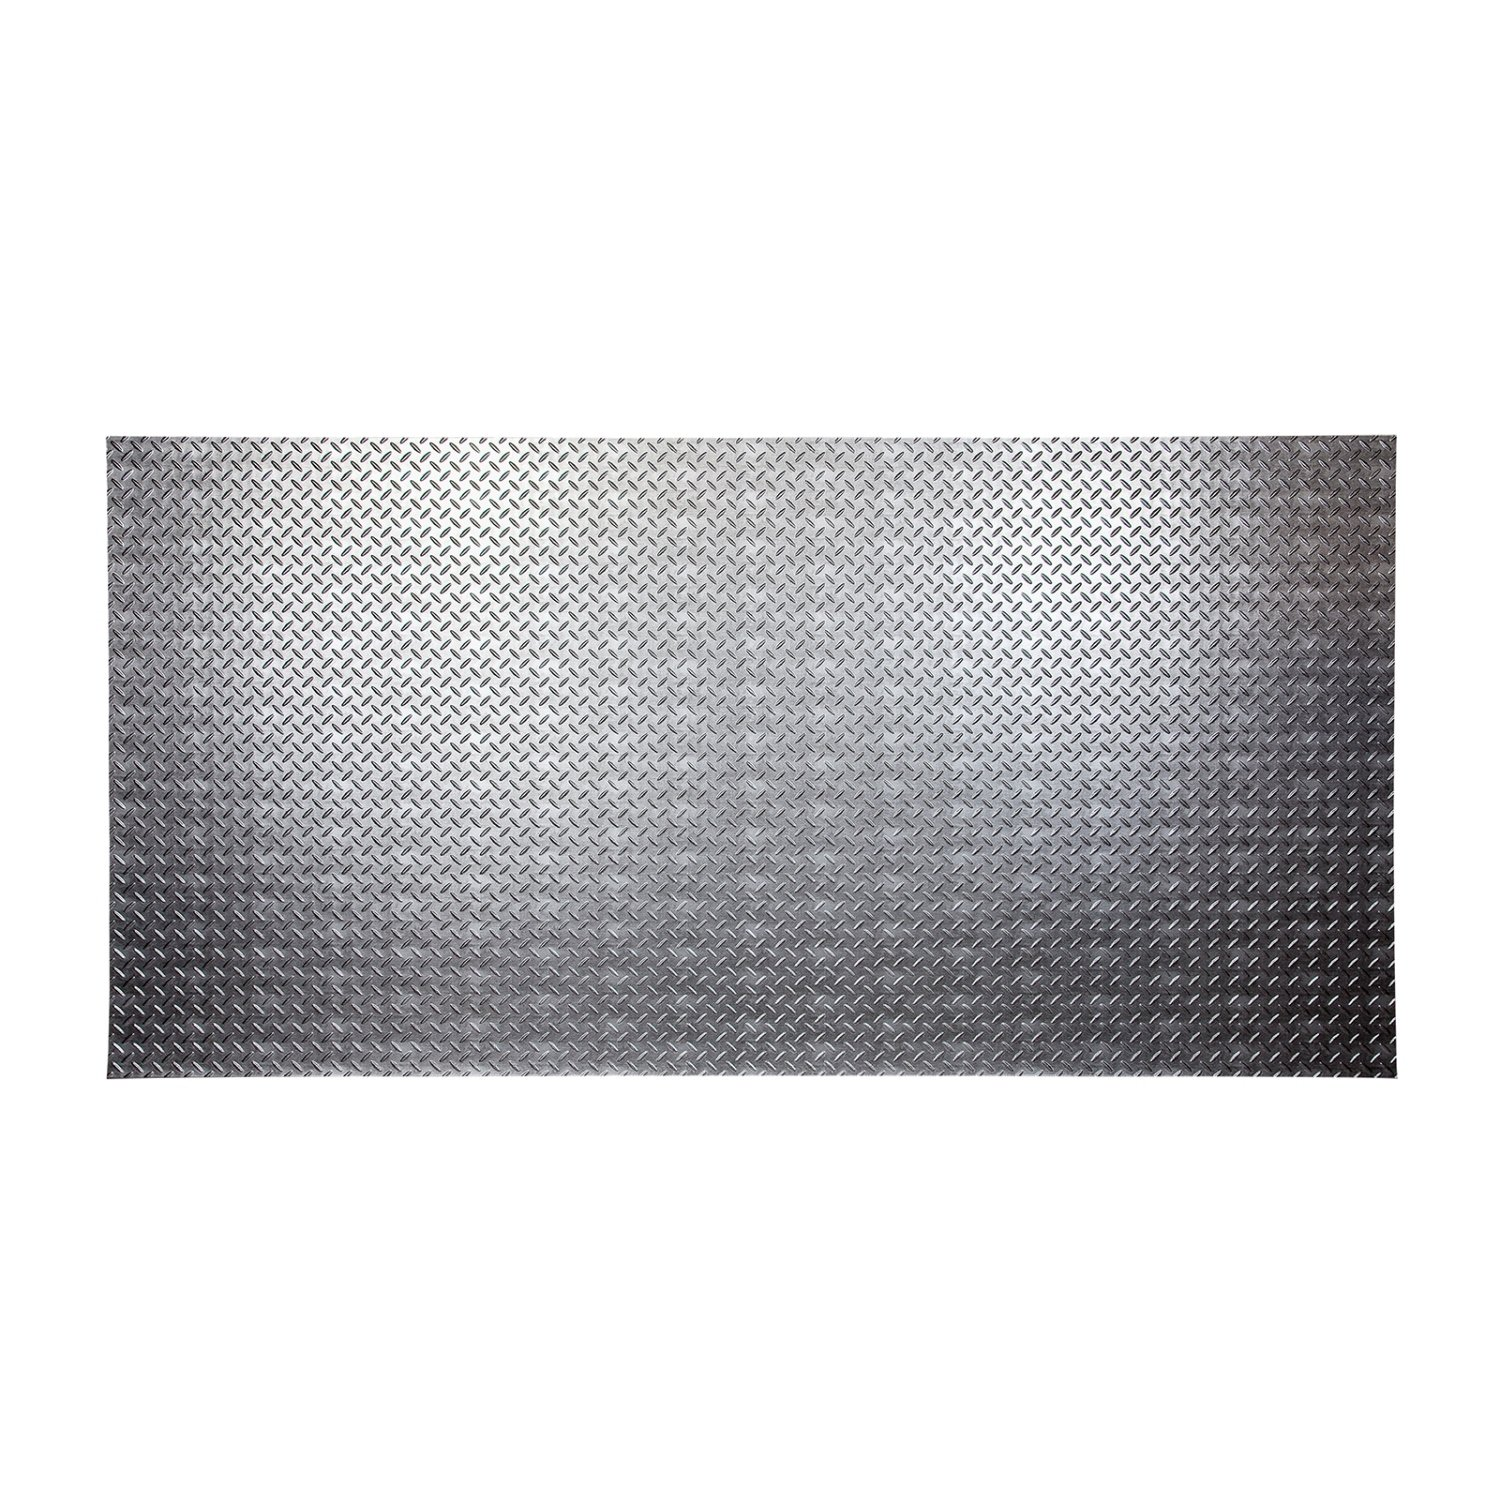 Fasade - Diamond Plate Crosshatch Silver Decorative Wall Panel - Fast and Easy Installation (4' X 8' Panel)